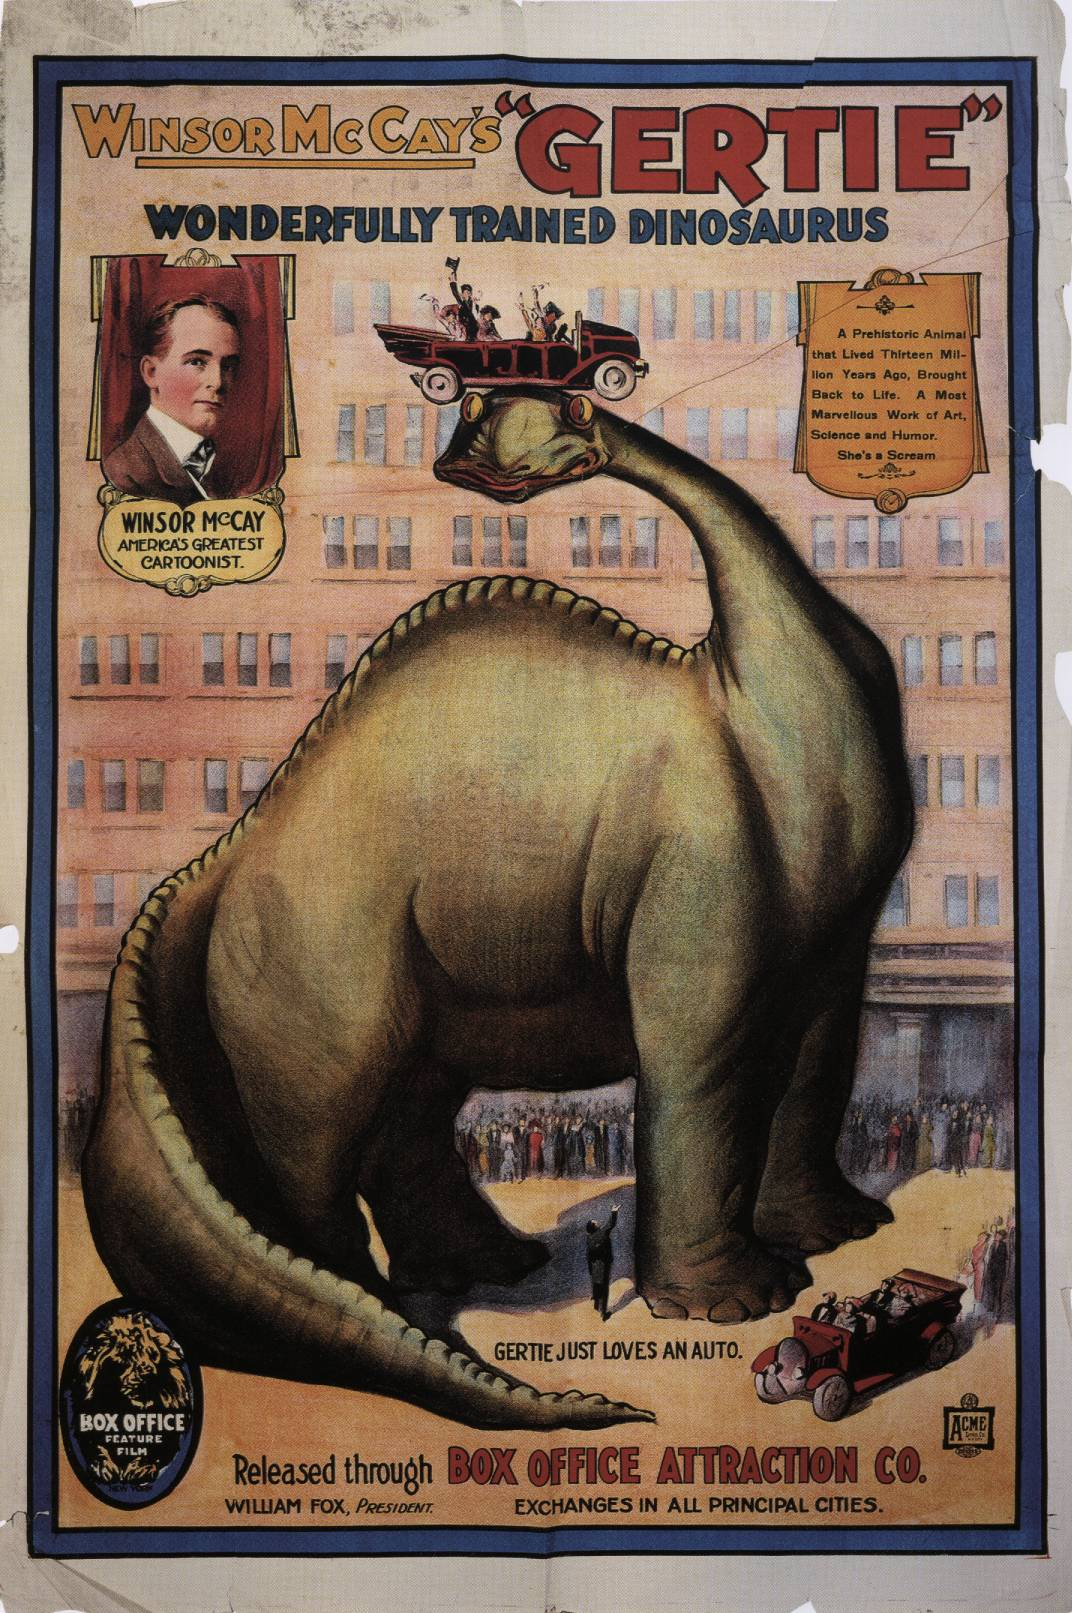 http://upload.wikimedia.org/wikipedia/commons/9/9e/Gertie_the_Dinosaur_poster.jpg